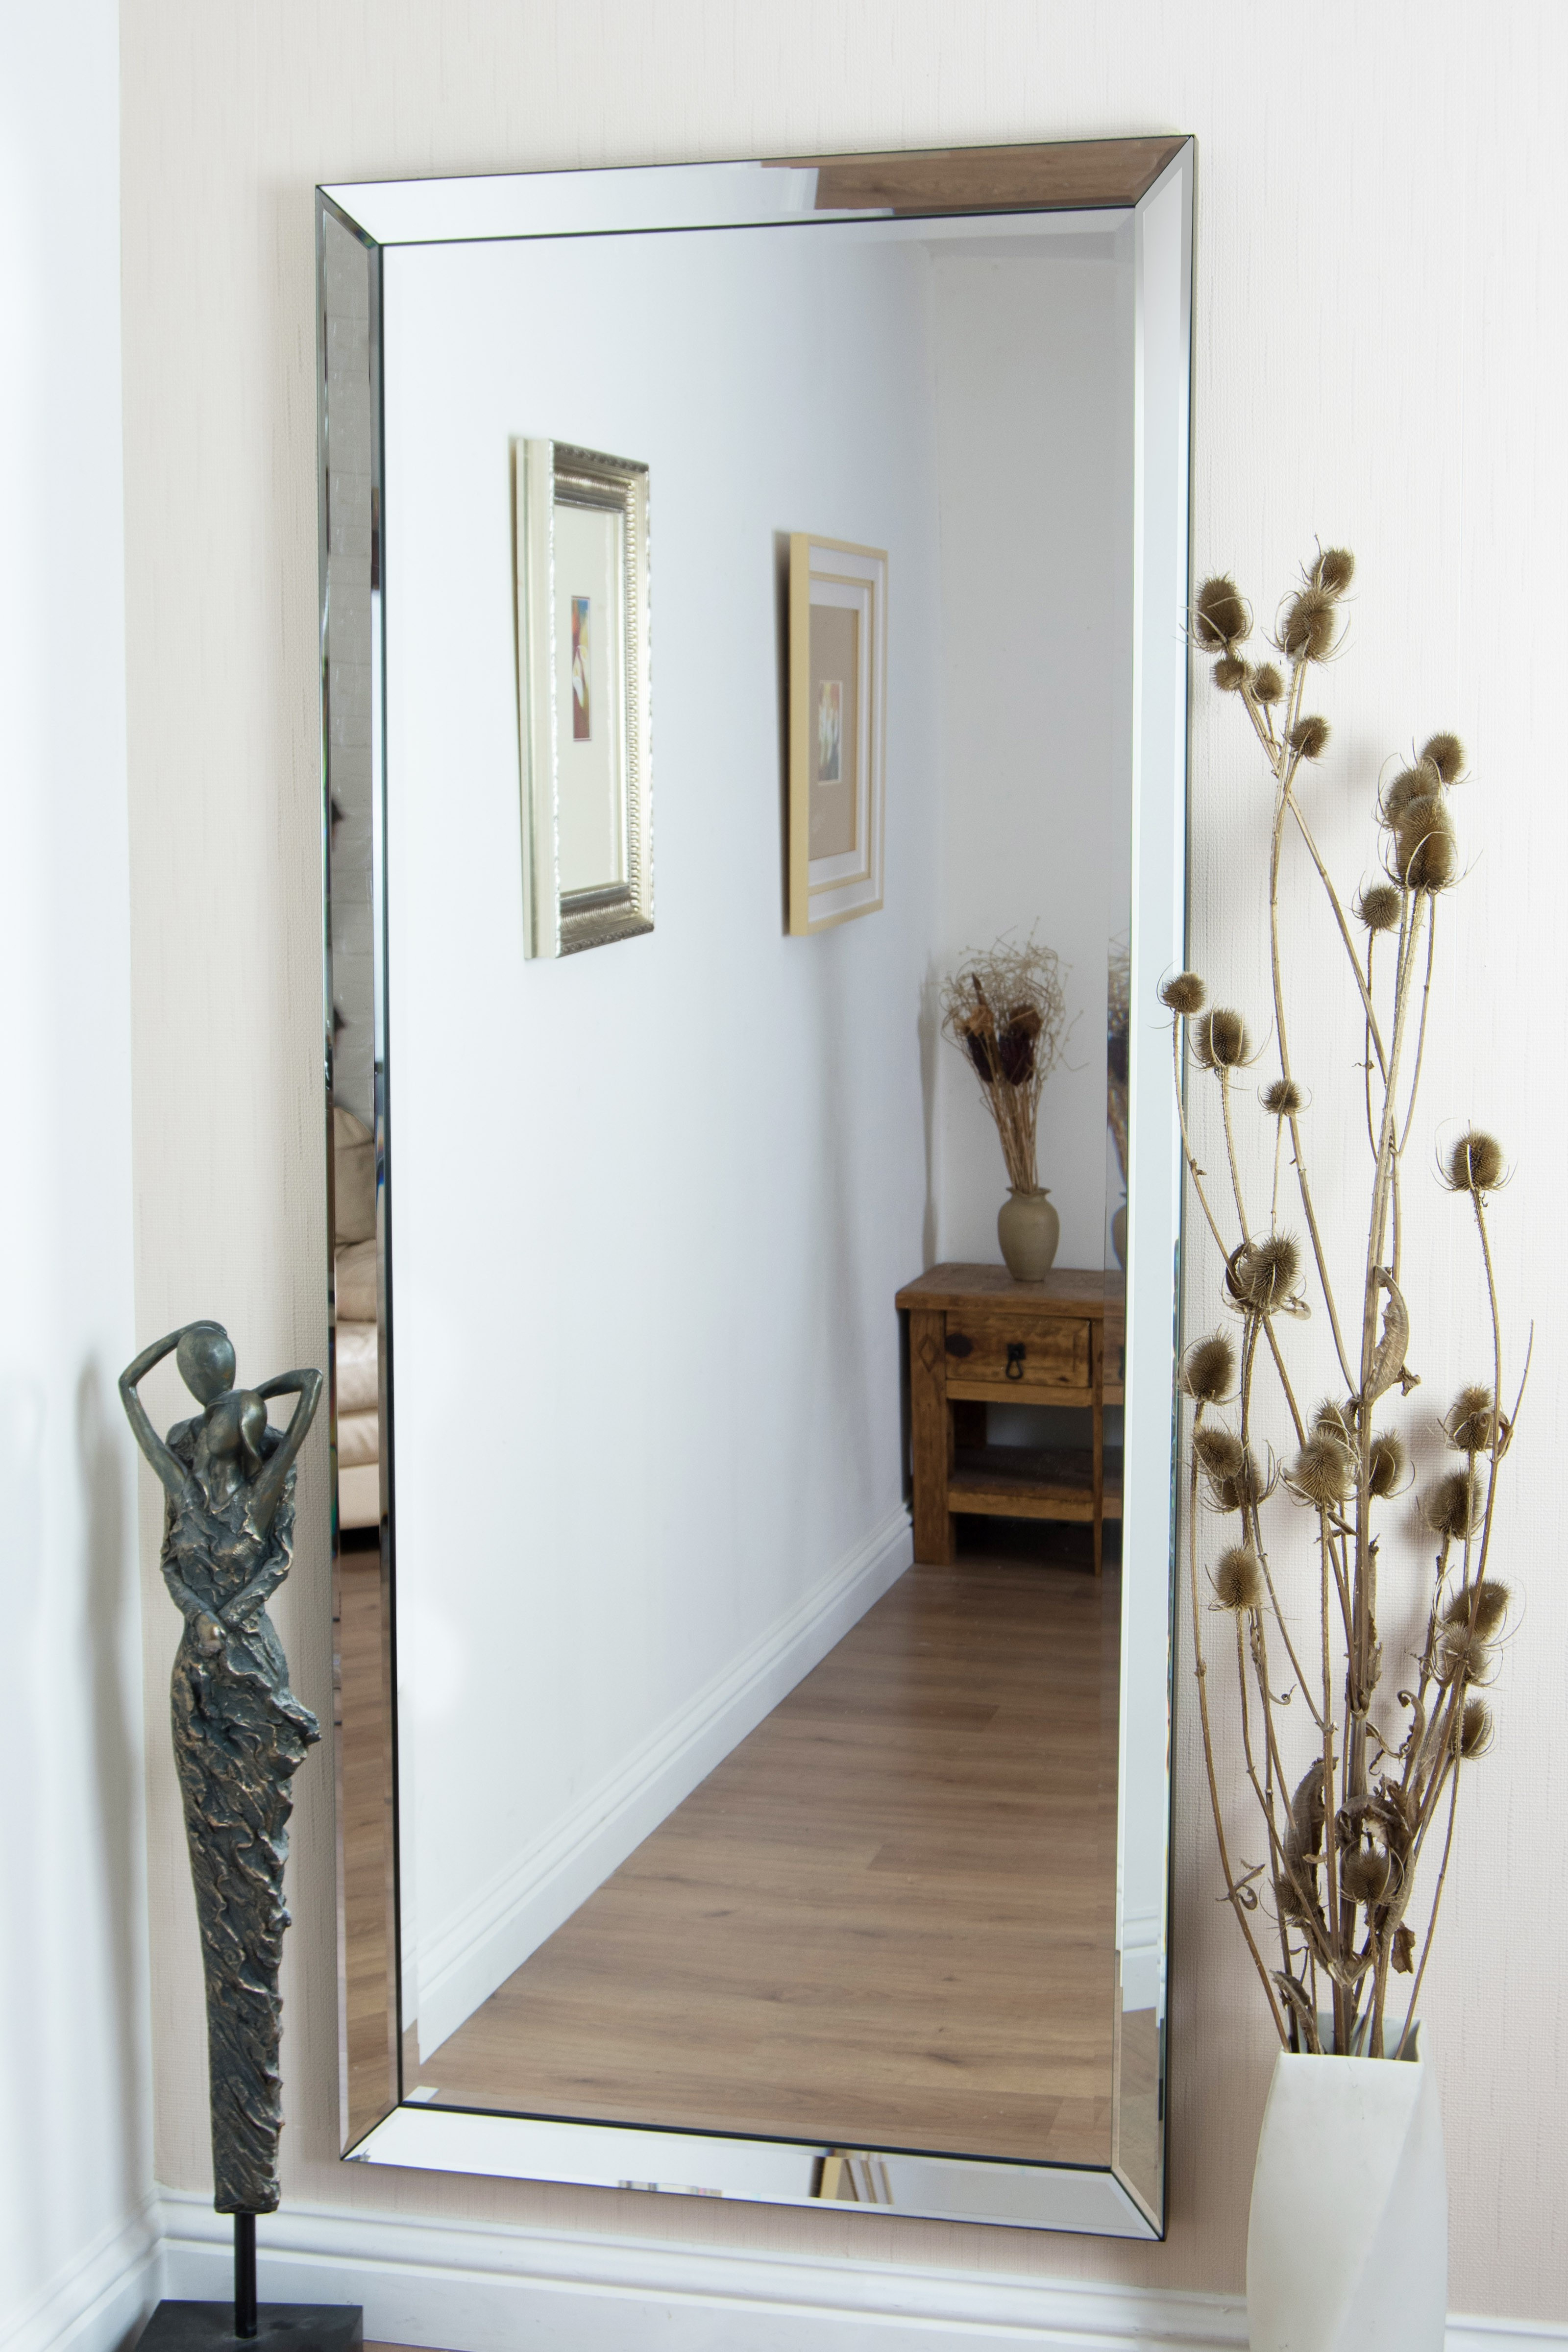 Widely Used Interior Design : Wall Mirrors For Hallway Luxury Homely Throughout Hallway Wall Mirrors (View 8 of 20)